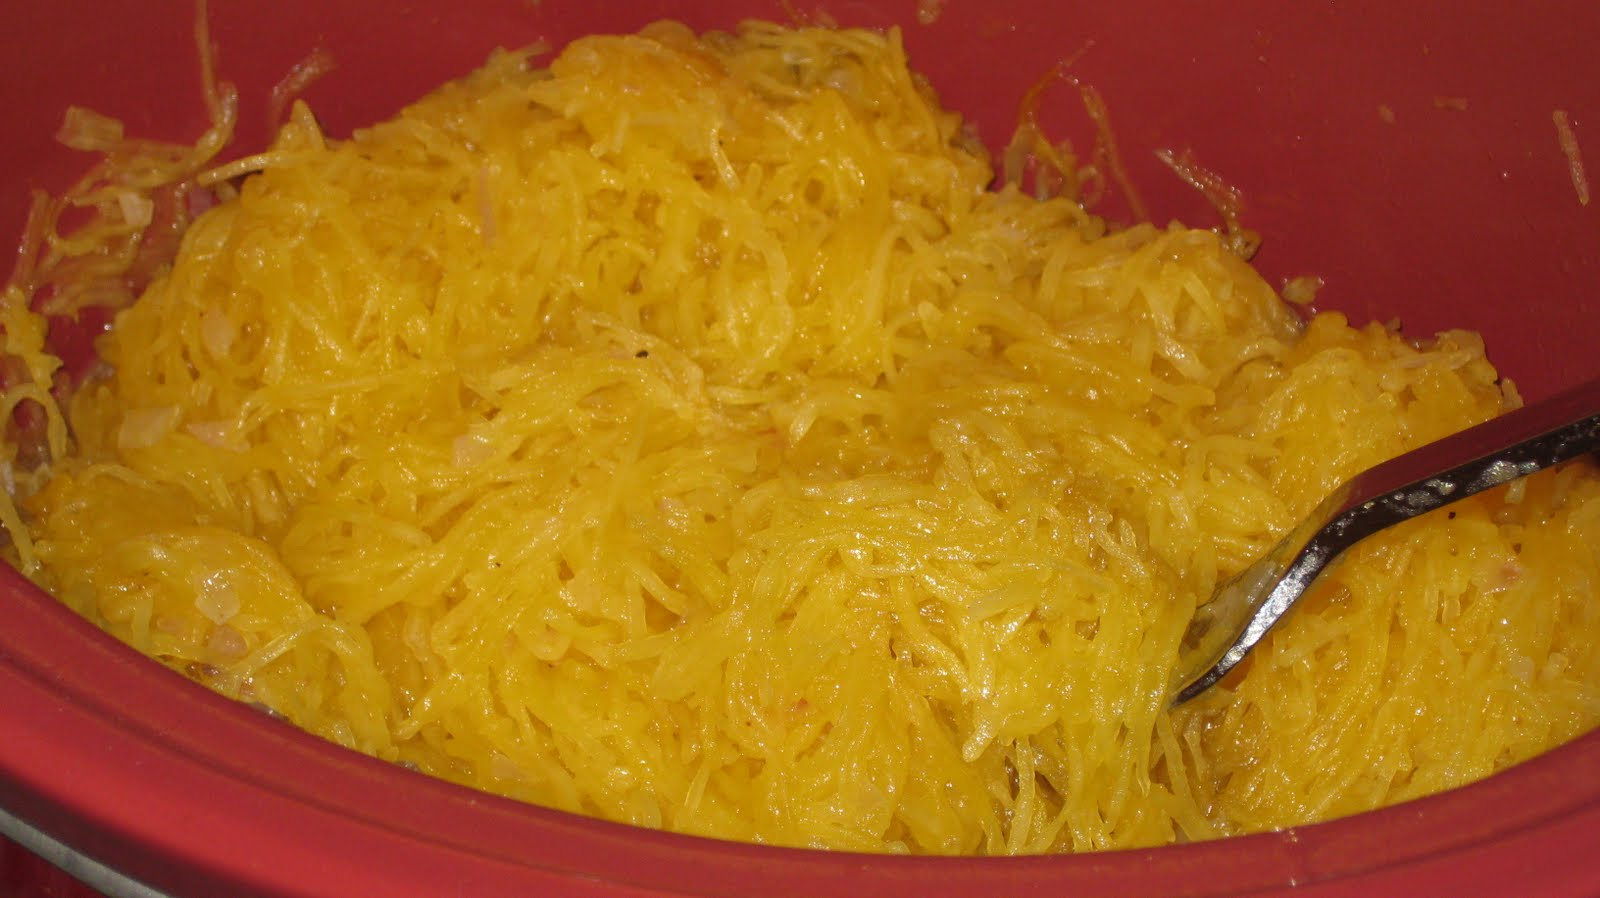 ... : Christmas Dinner, Part One: Spaghetti Squash with Maple and Shallot